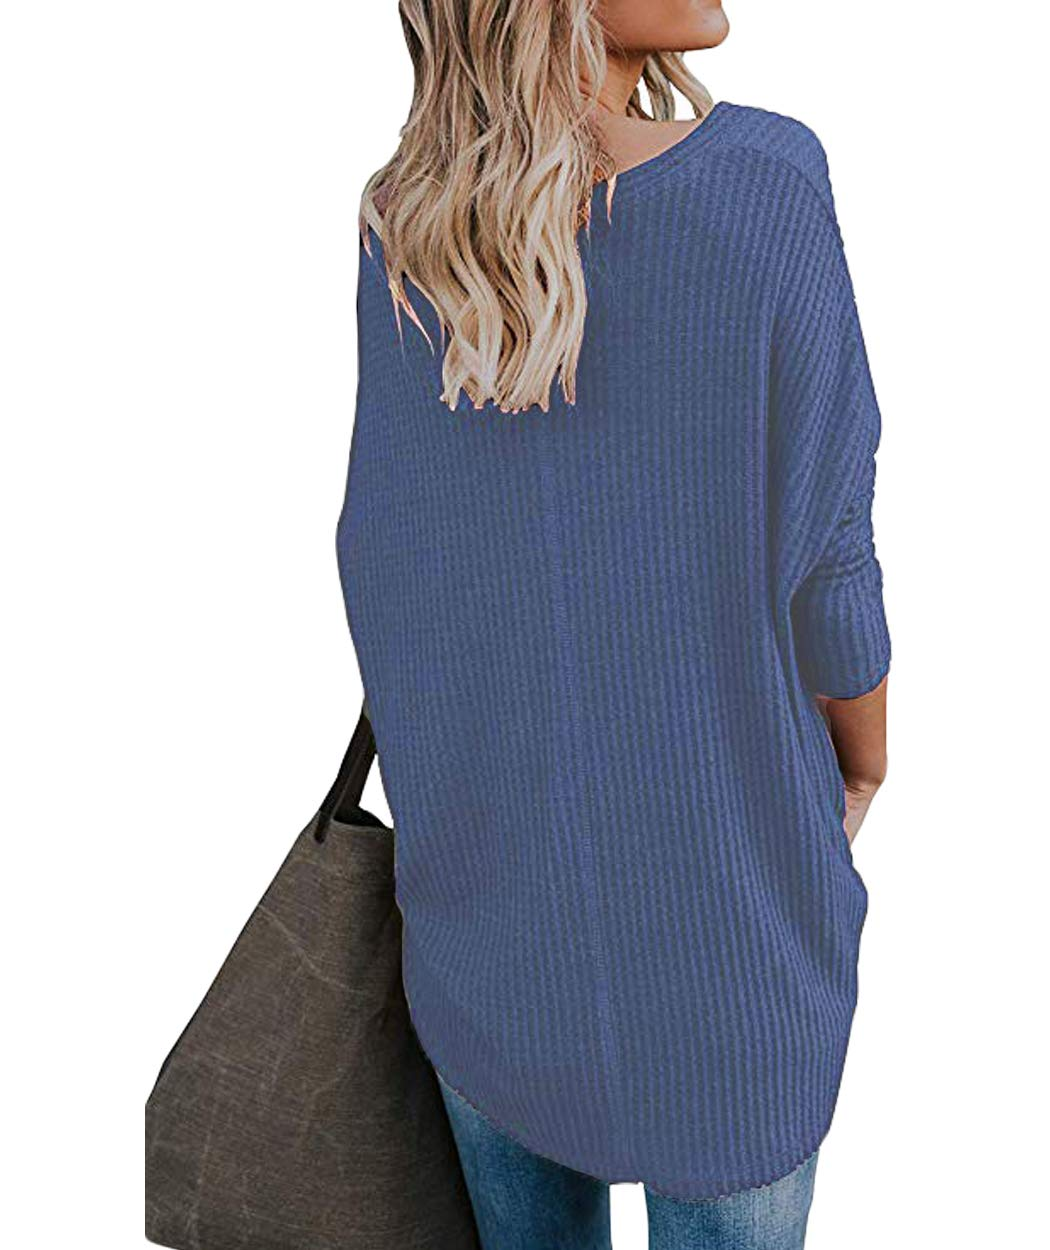 Eanklosco Tie Knot Tops Womens Waffle Knit V Neck Blouse Button Down Long Sleeve Henley Shirt (Blue, XXL)